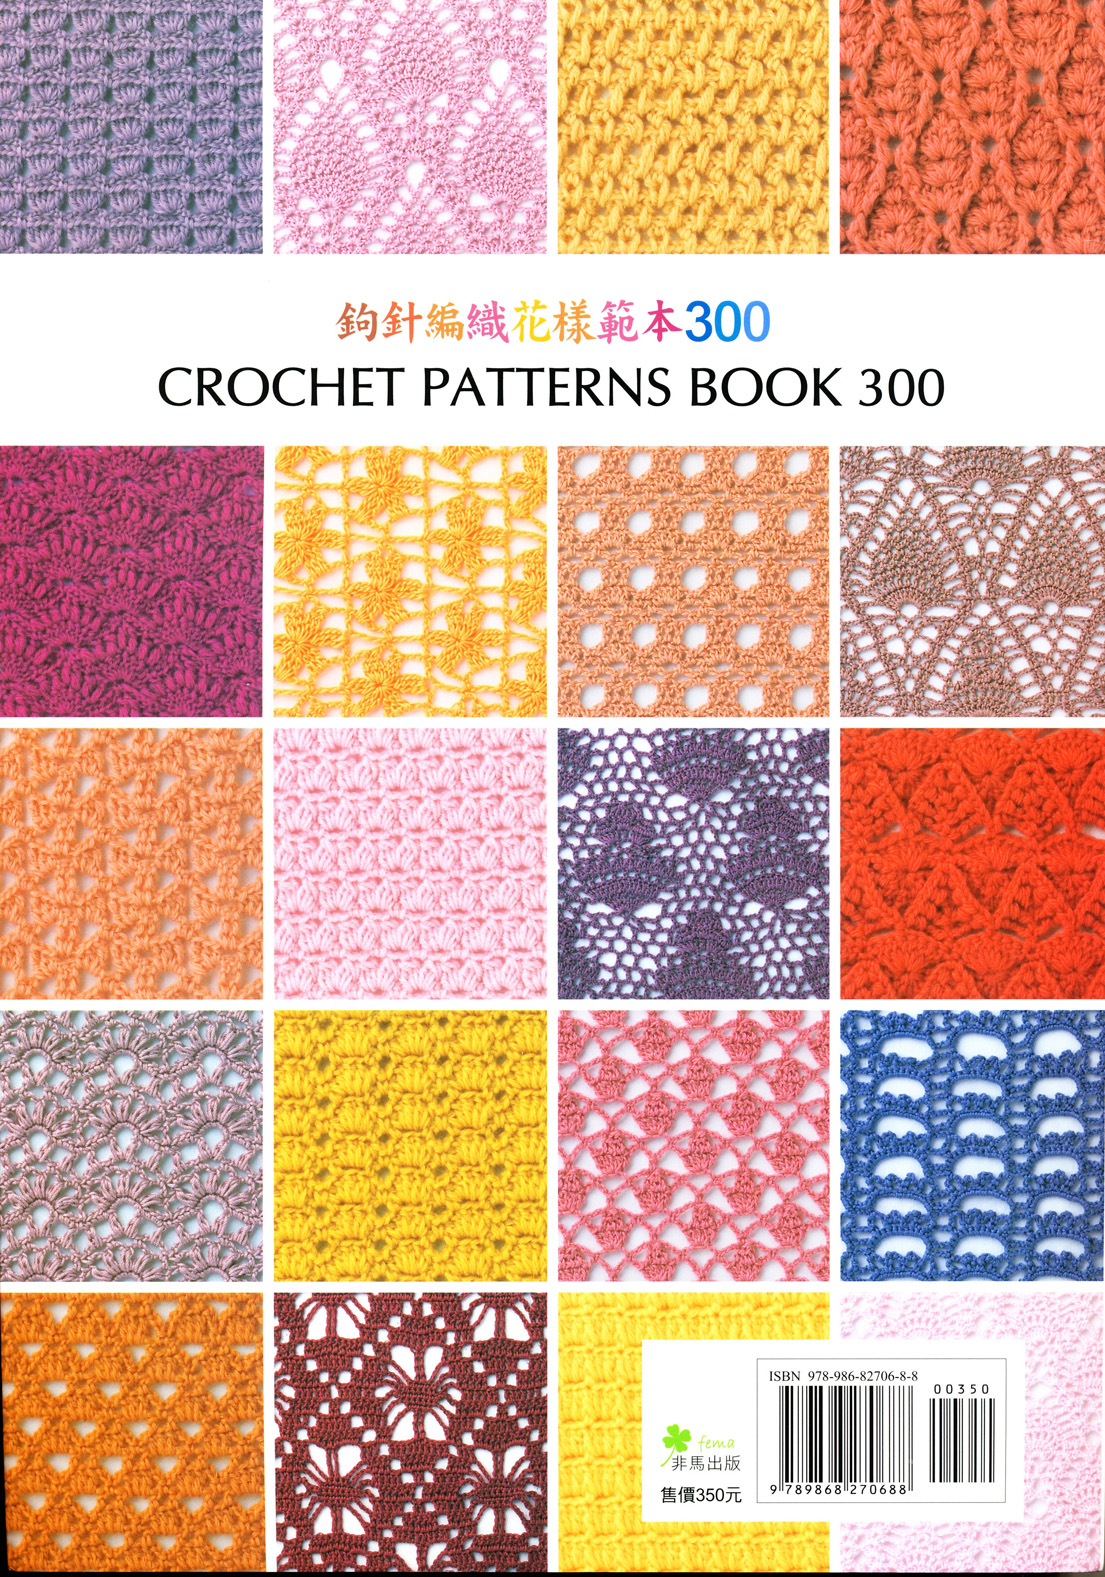 Crochet Stitches Uk Vs Us : MyCreativeCard.com: Japanese Crochet 300 Stitches Guide Dictionary